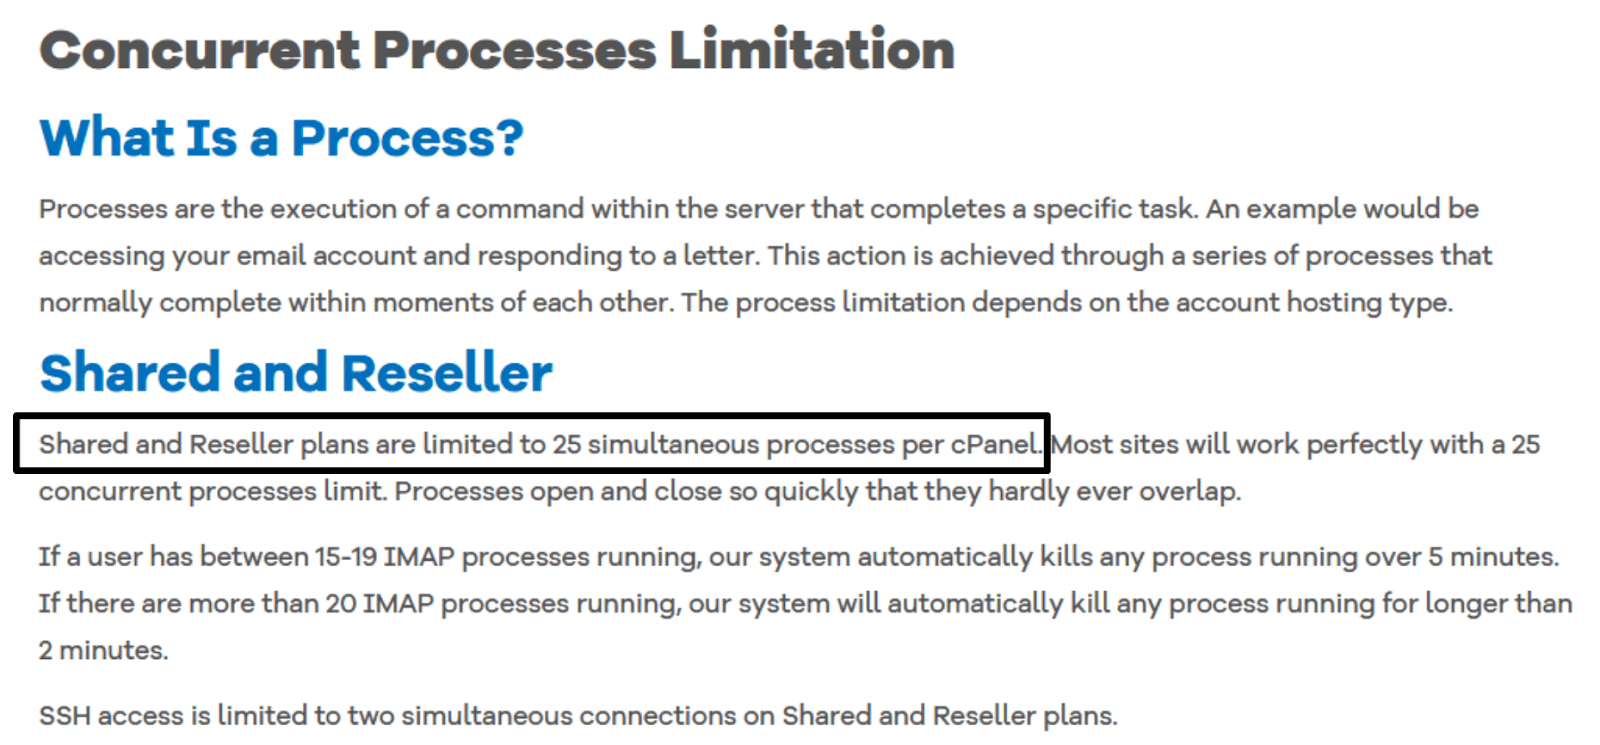 HostGator Terms of Service - limited on simultaneous processes per cPanel